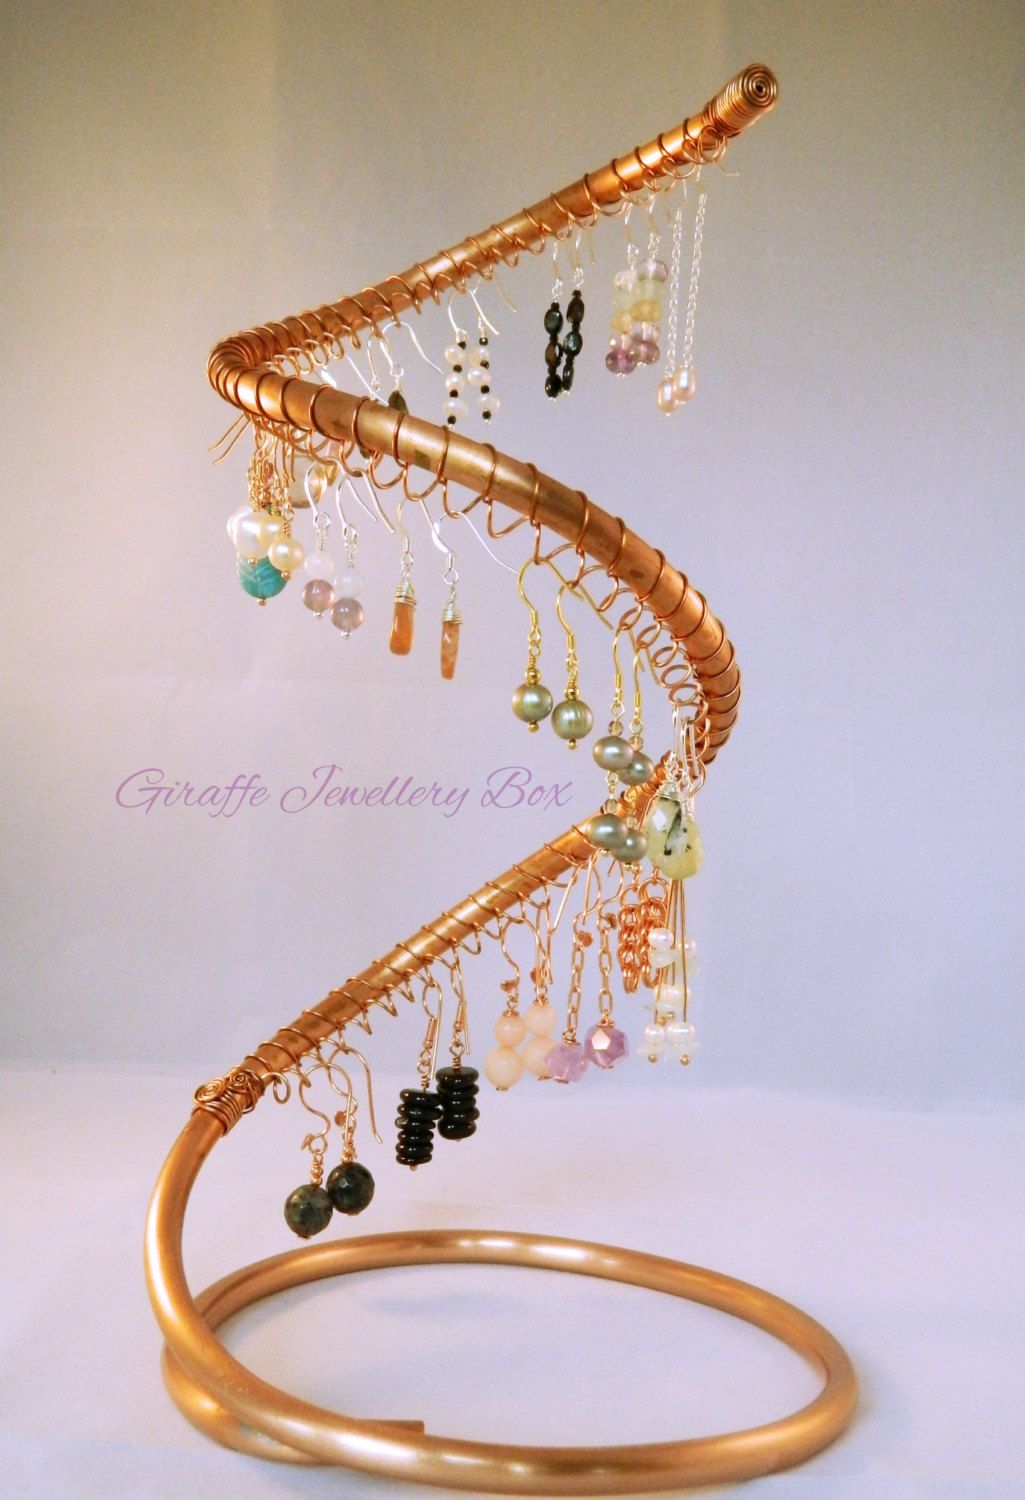 Handmade Copper Spiral Earring Display Stand Cascade Holds